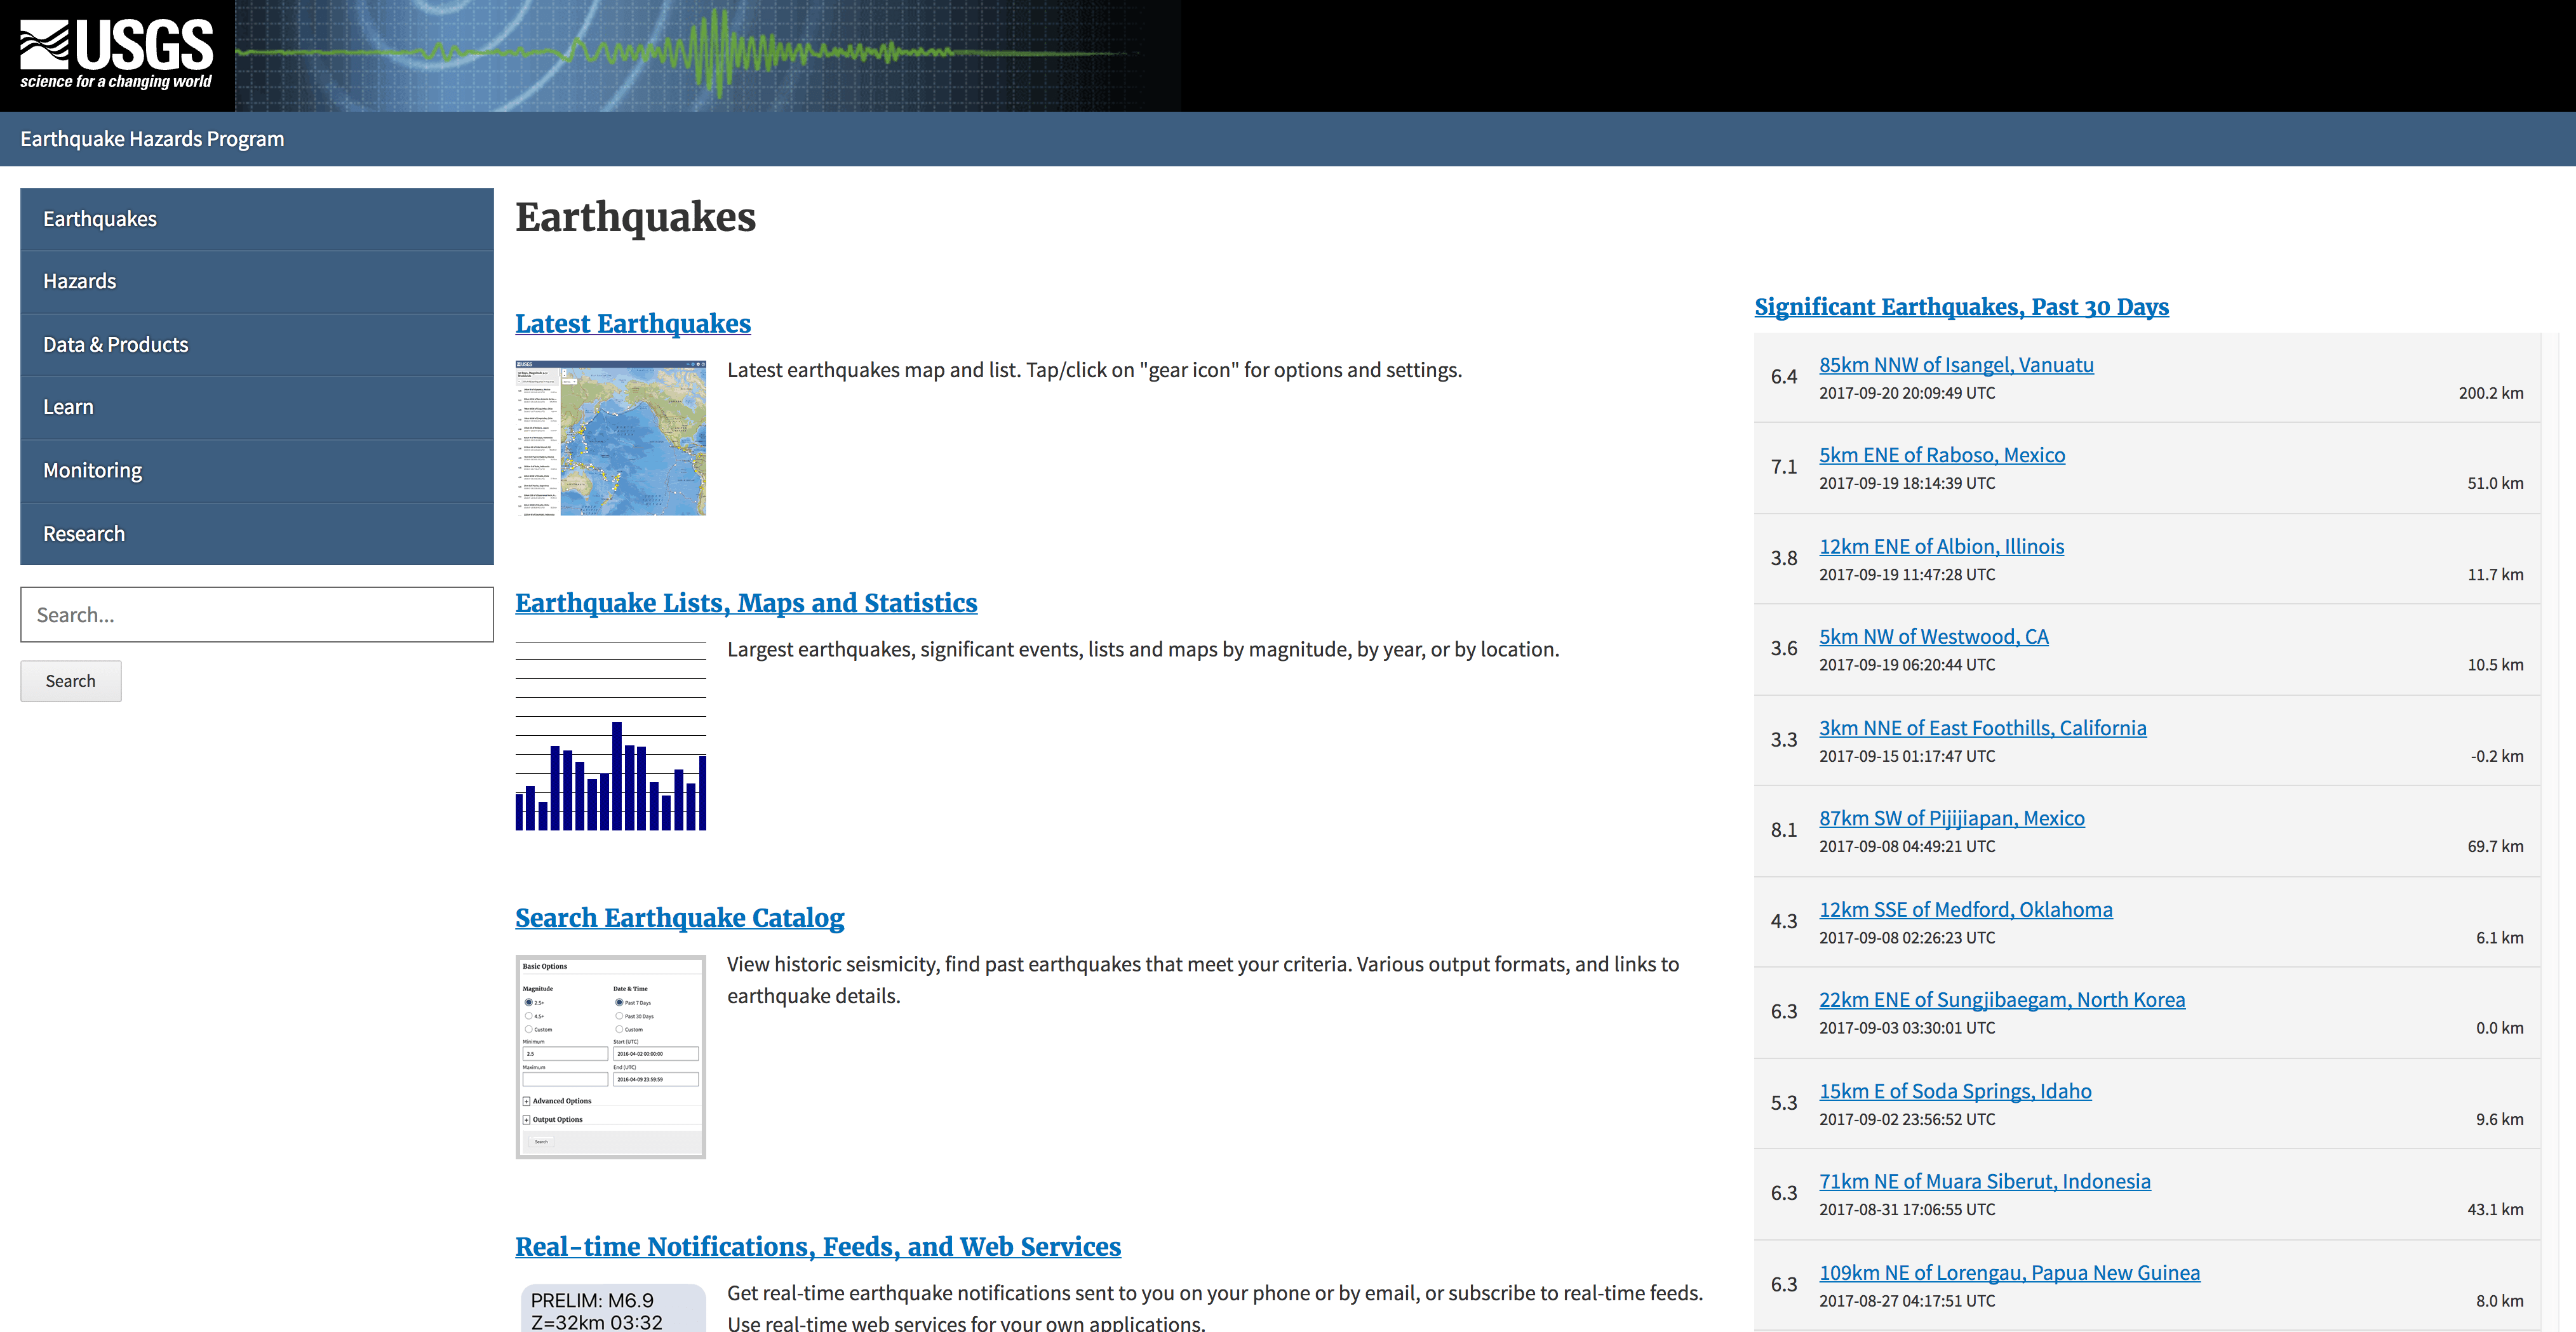 Go to https://earthquake.usgs.gov/earthquakes/ to find interactive maps and more information about the potential for earthquakes in your area.